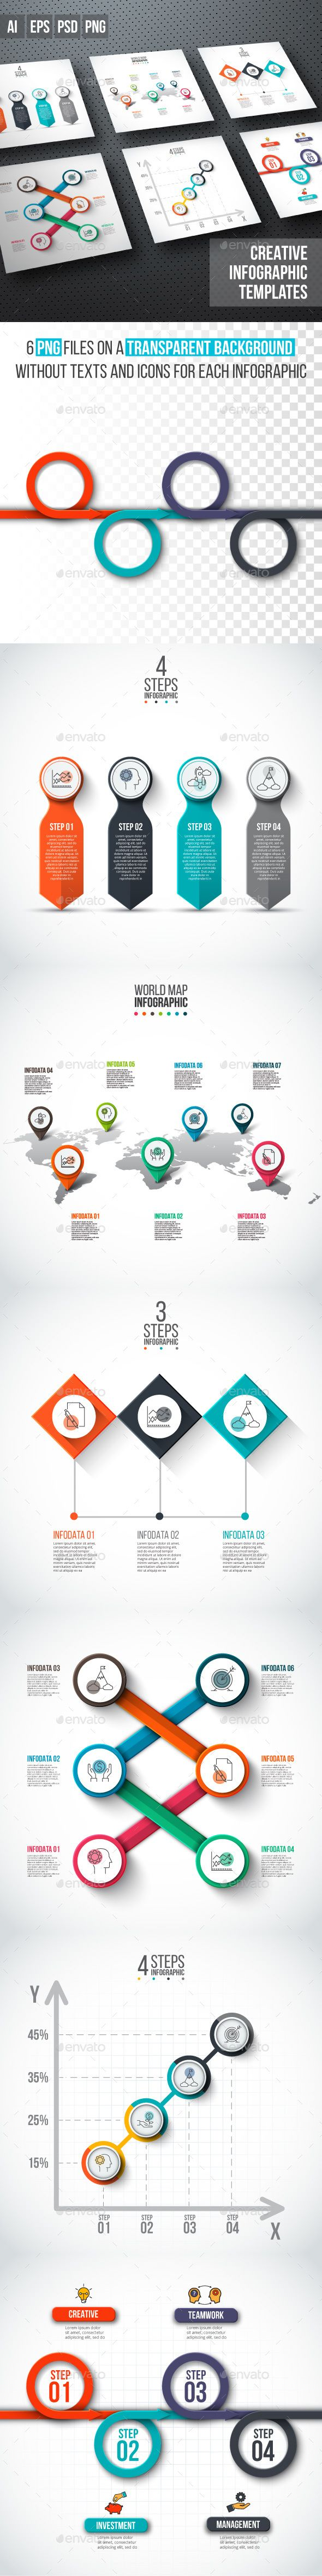 Business infographic diagrams v.14 - #Infographics Download here: https://graphicriver.net/item/business-infographic-diagrams-v14/19508878?ref=alena994